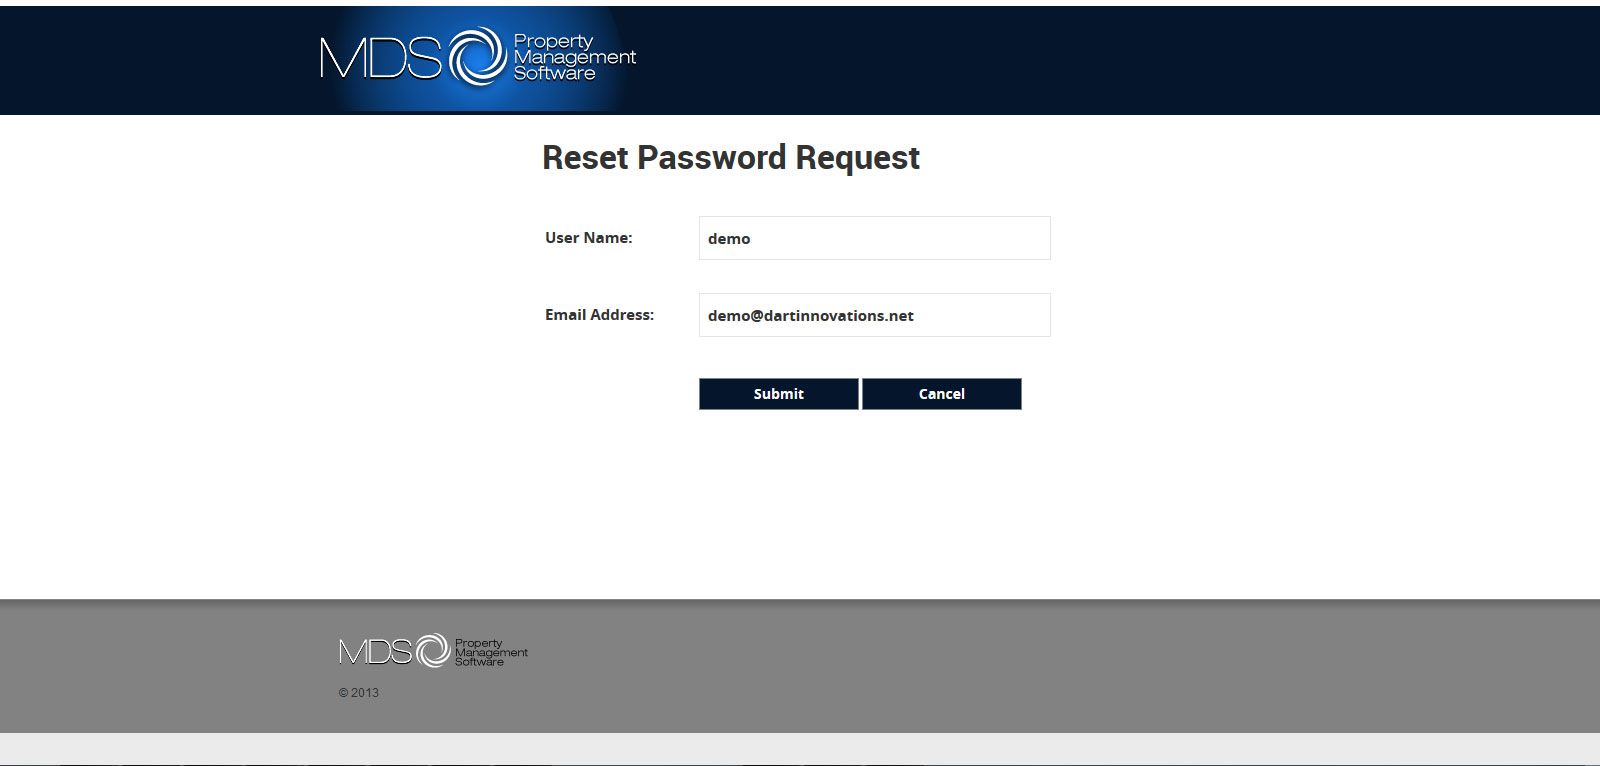 MDS - MS RDWEB 2012 R2 Reset Password Request